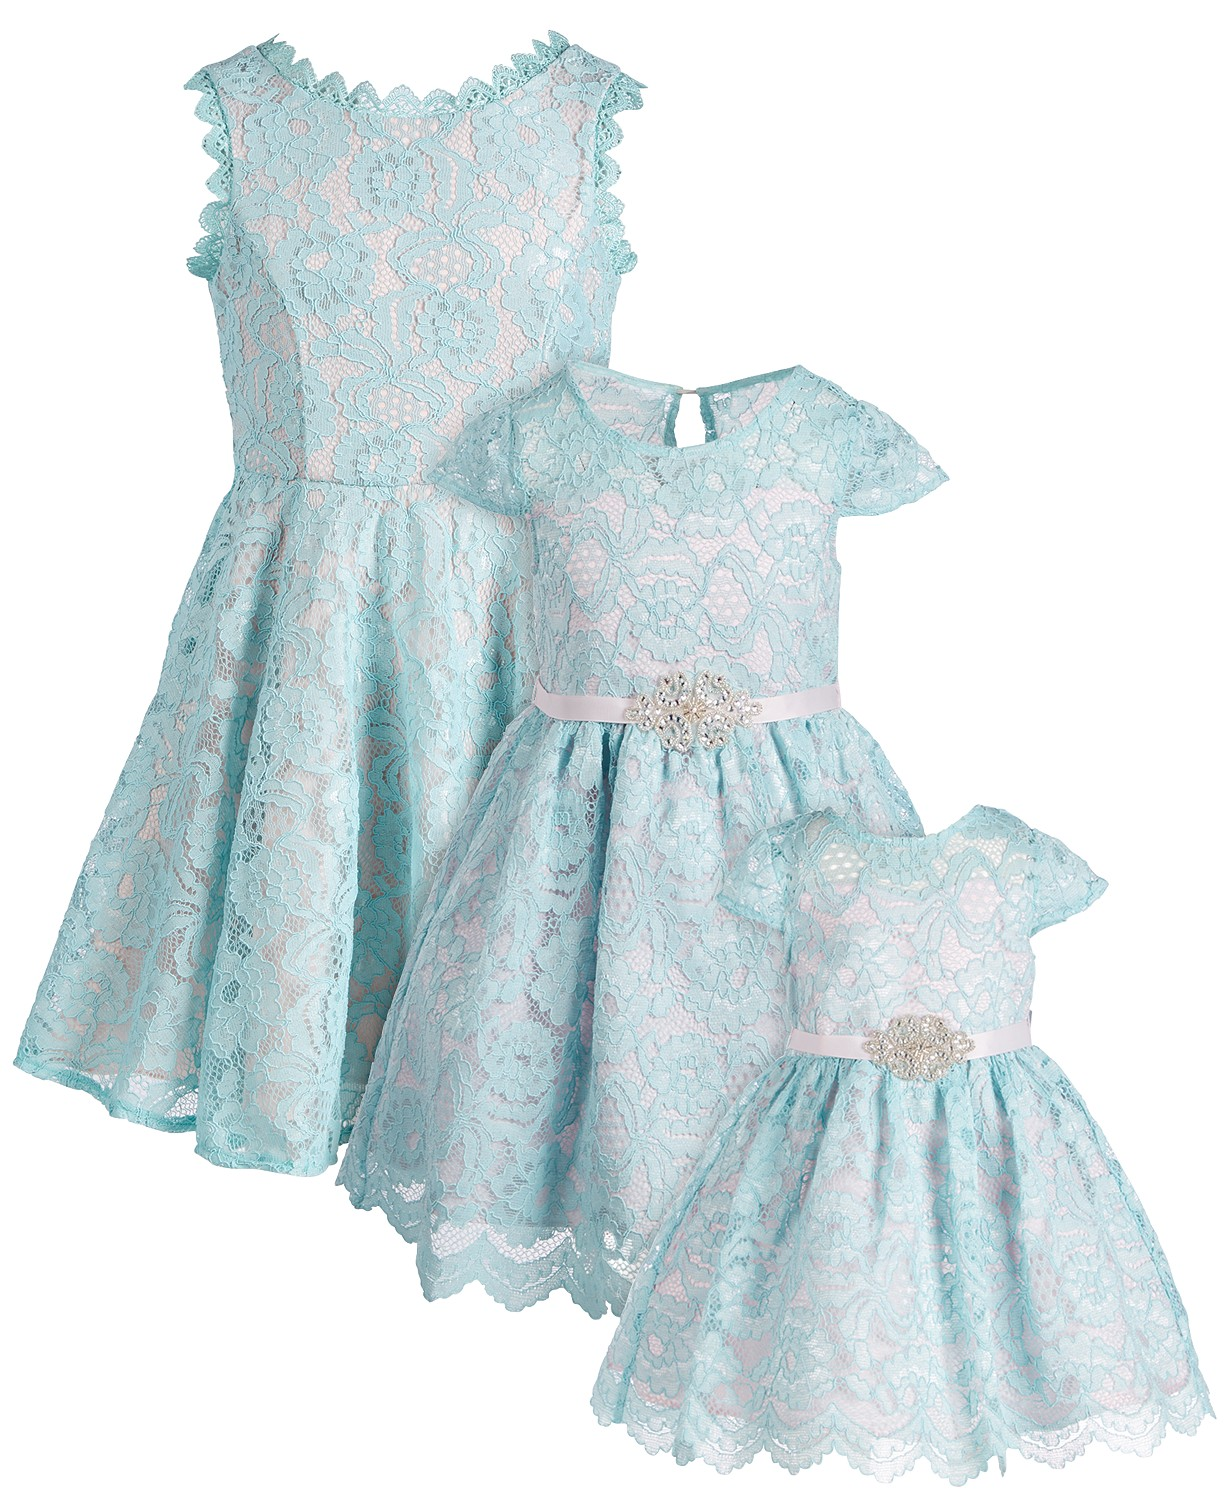 Mint lace dress for Easter. Gorgeous sisters Easter dresses.